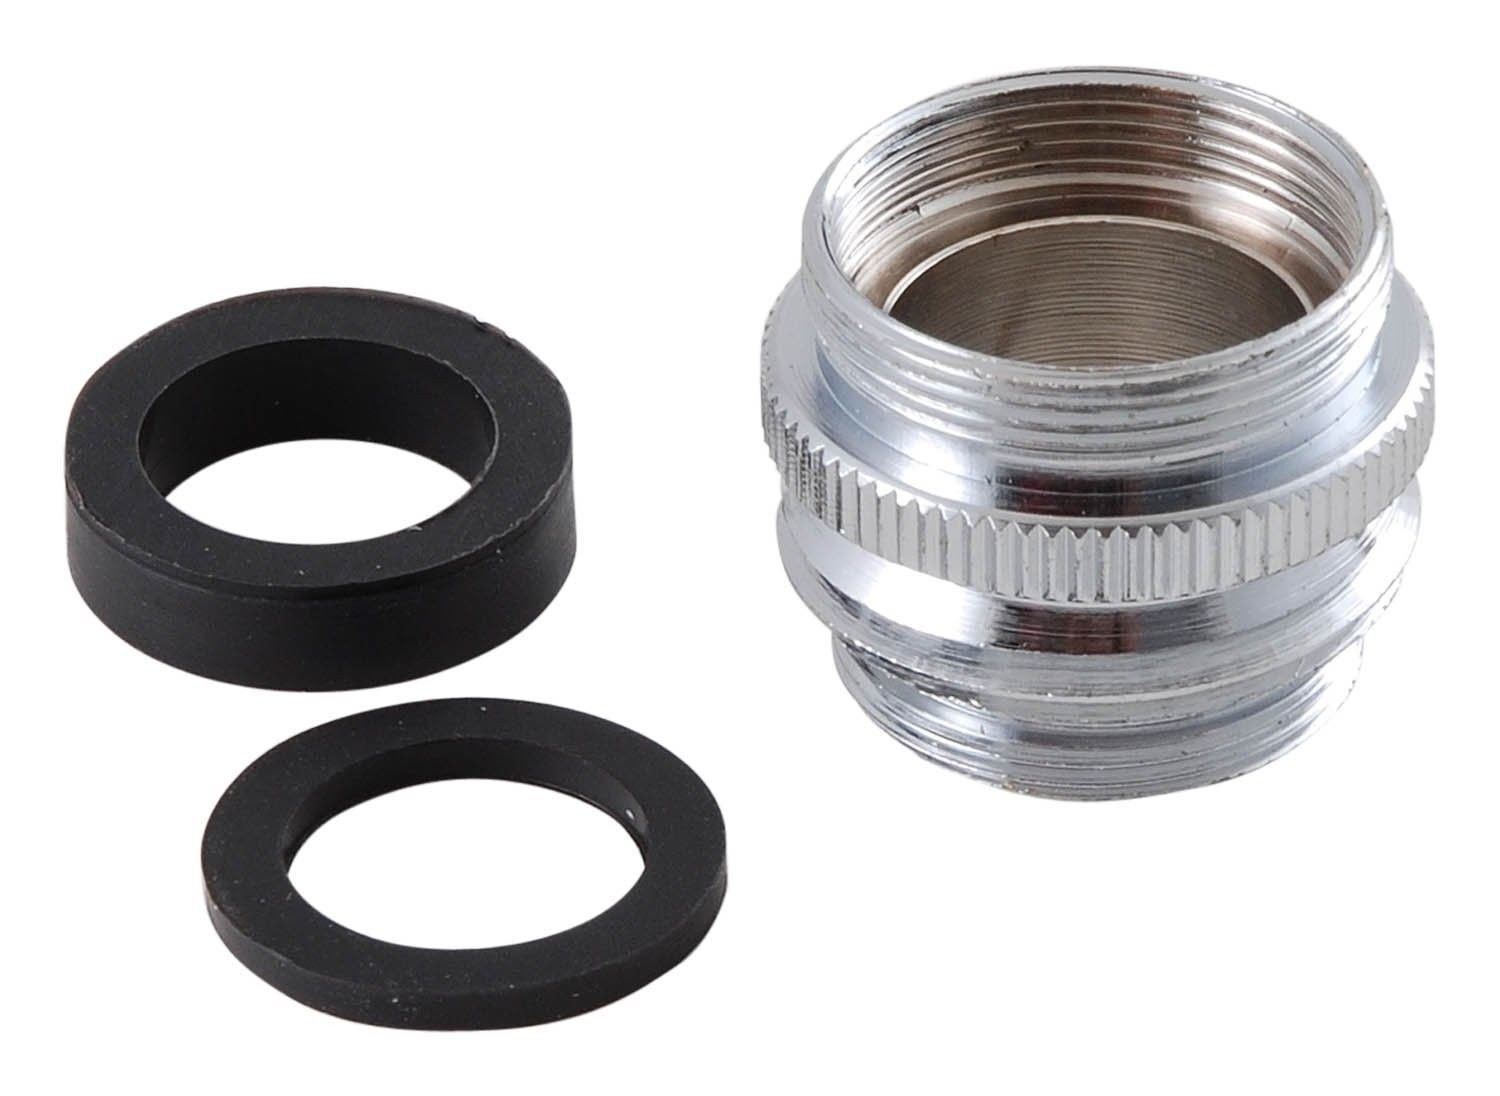 LDR 530 2050 Faucet to Hose or Aerator Adapter Lead   eBay